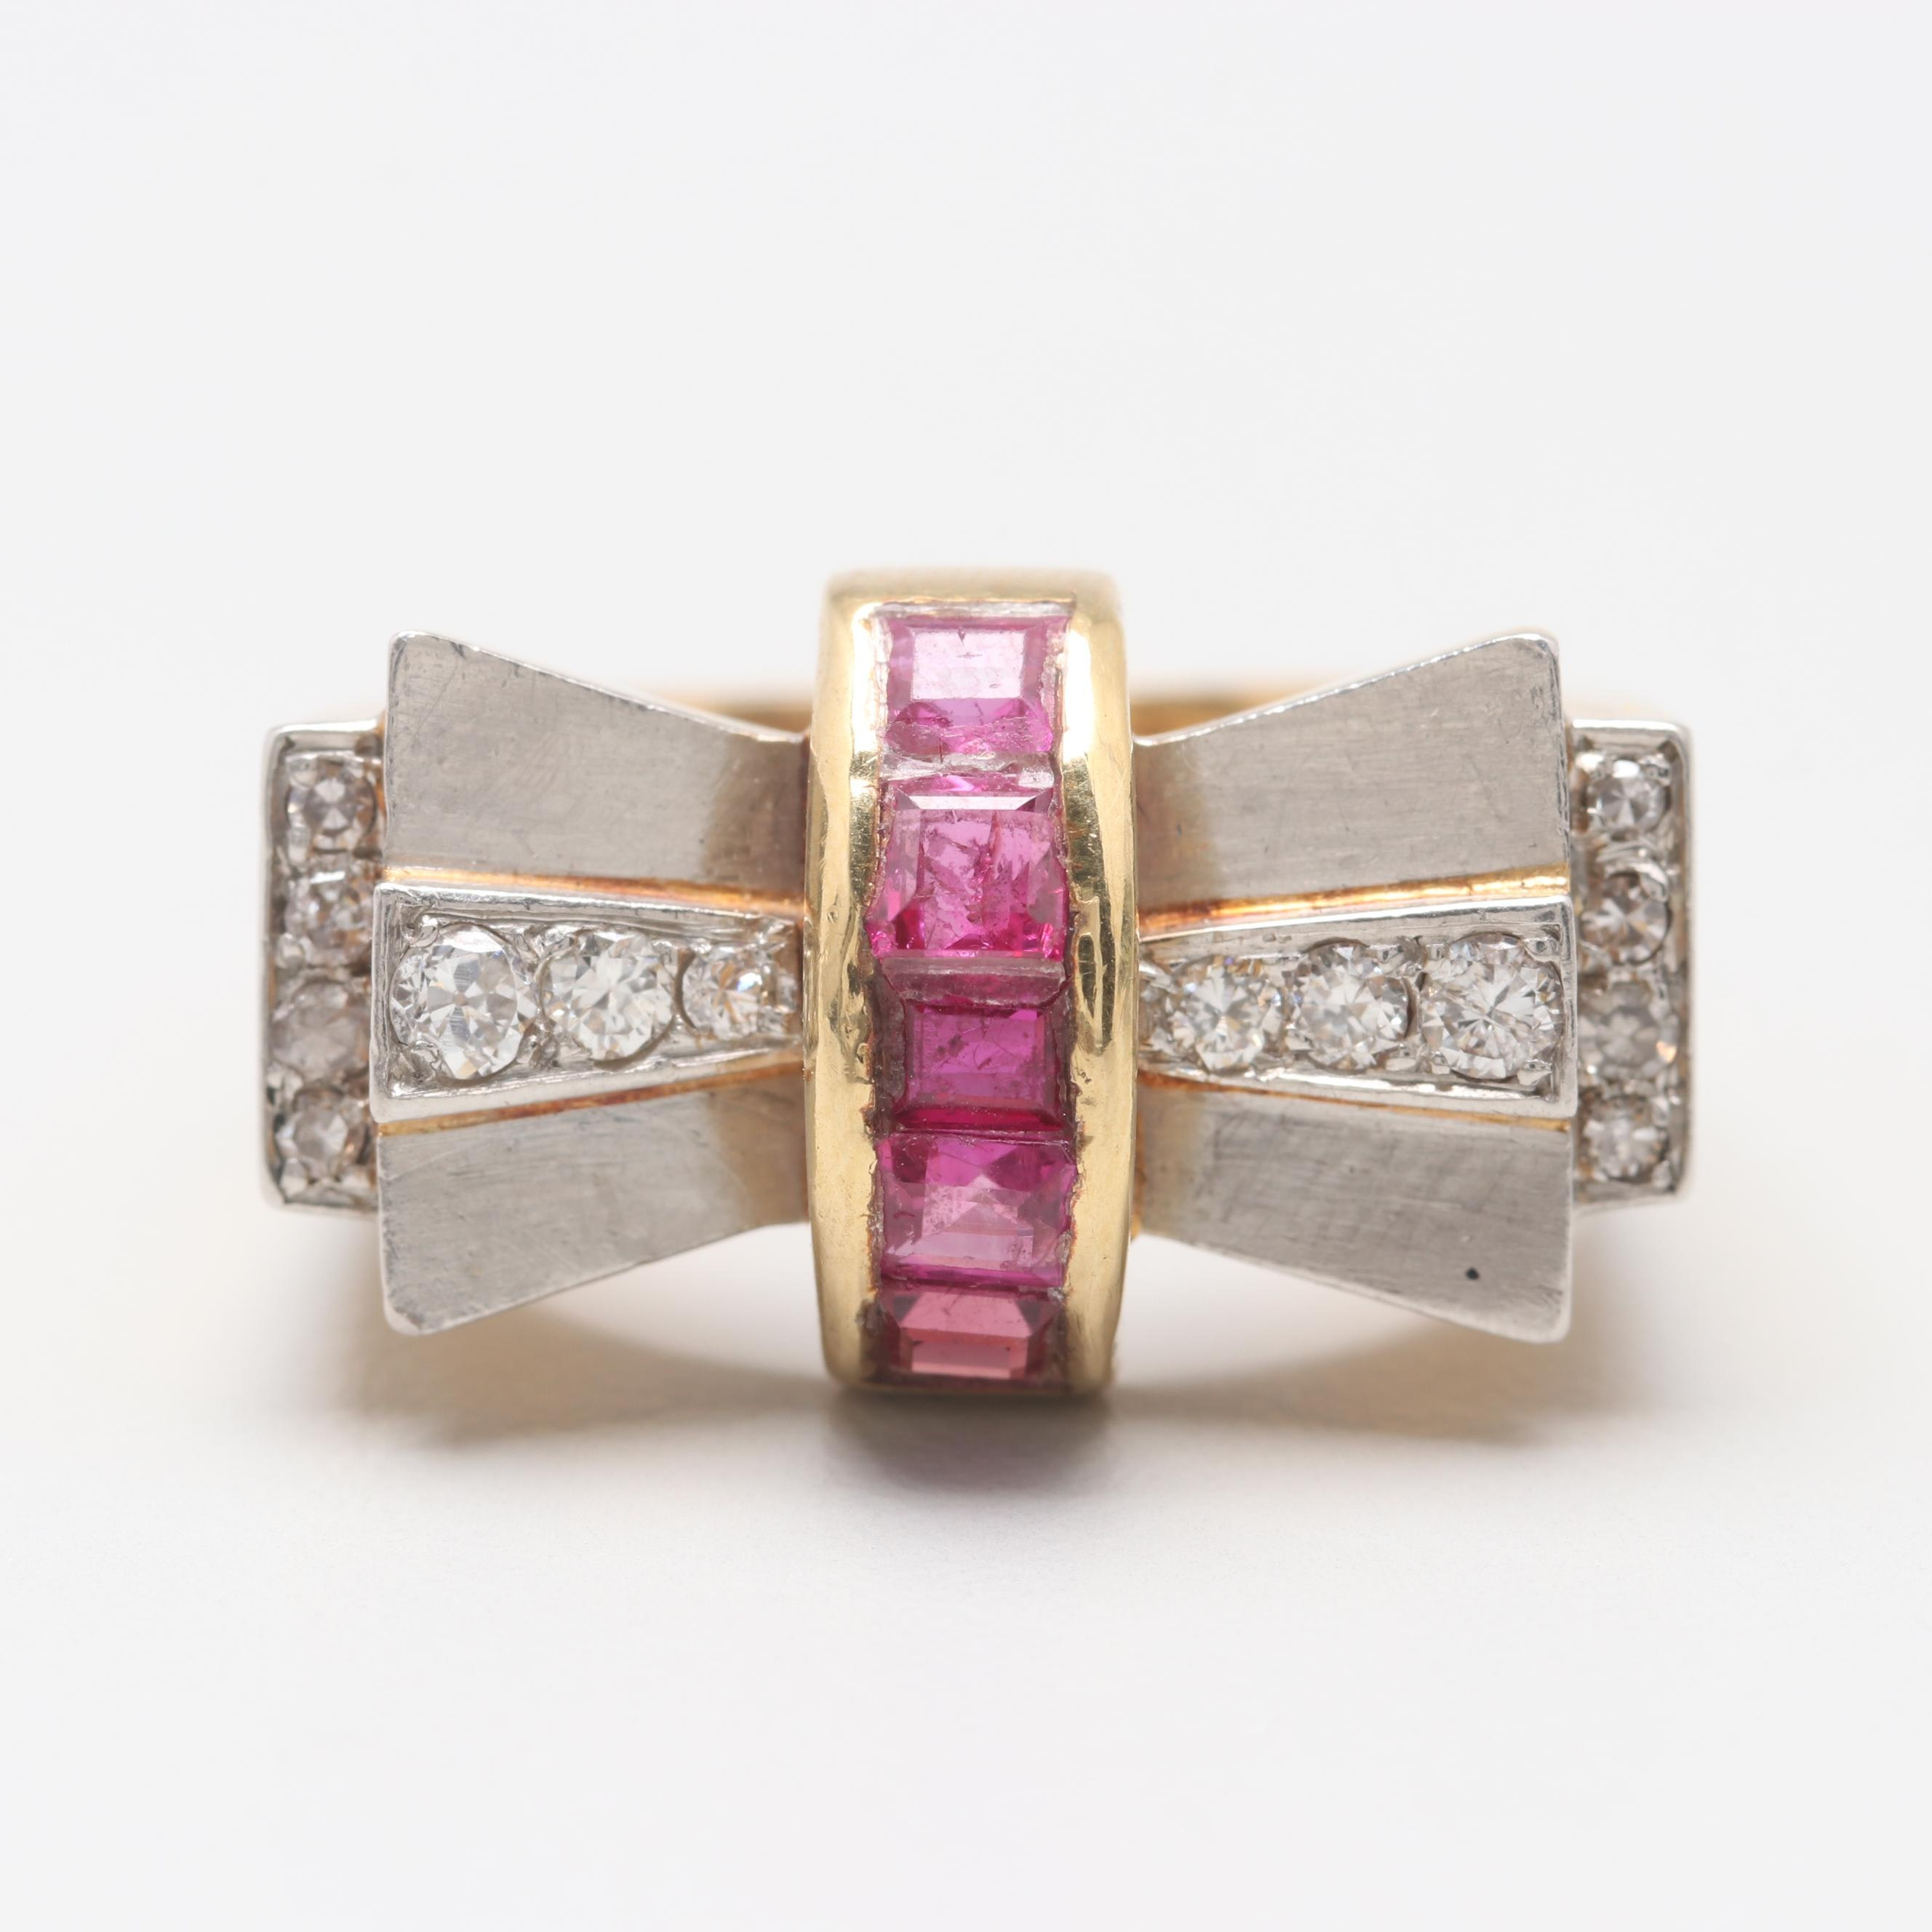 Retro 18K Yellow Gold Ruby and Diamond Ring With Platinum Accents